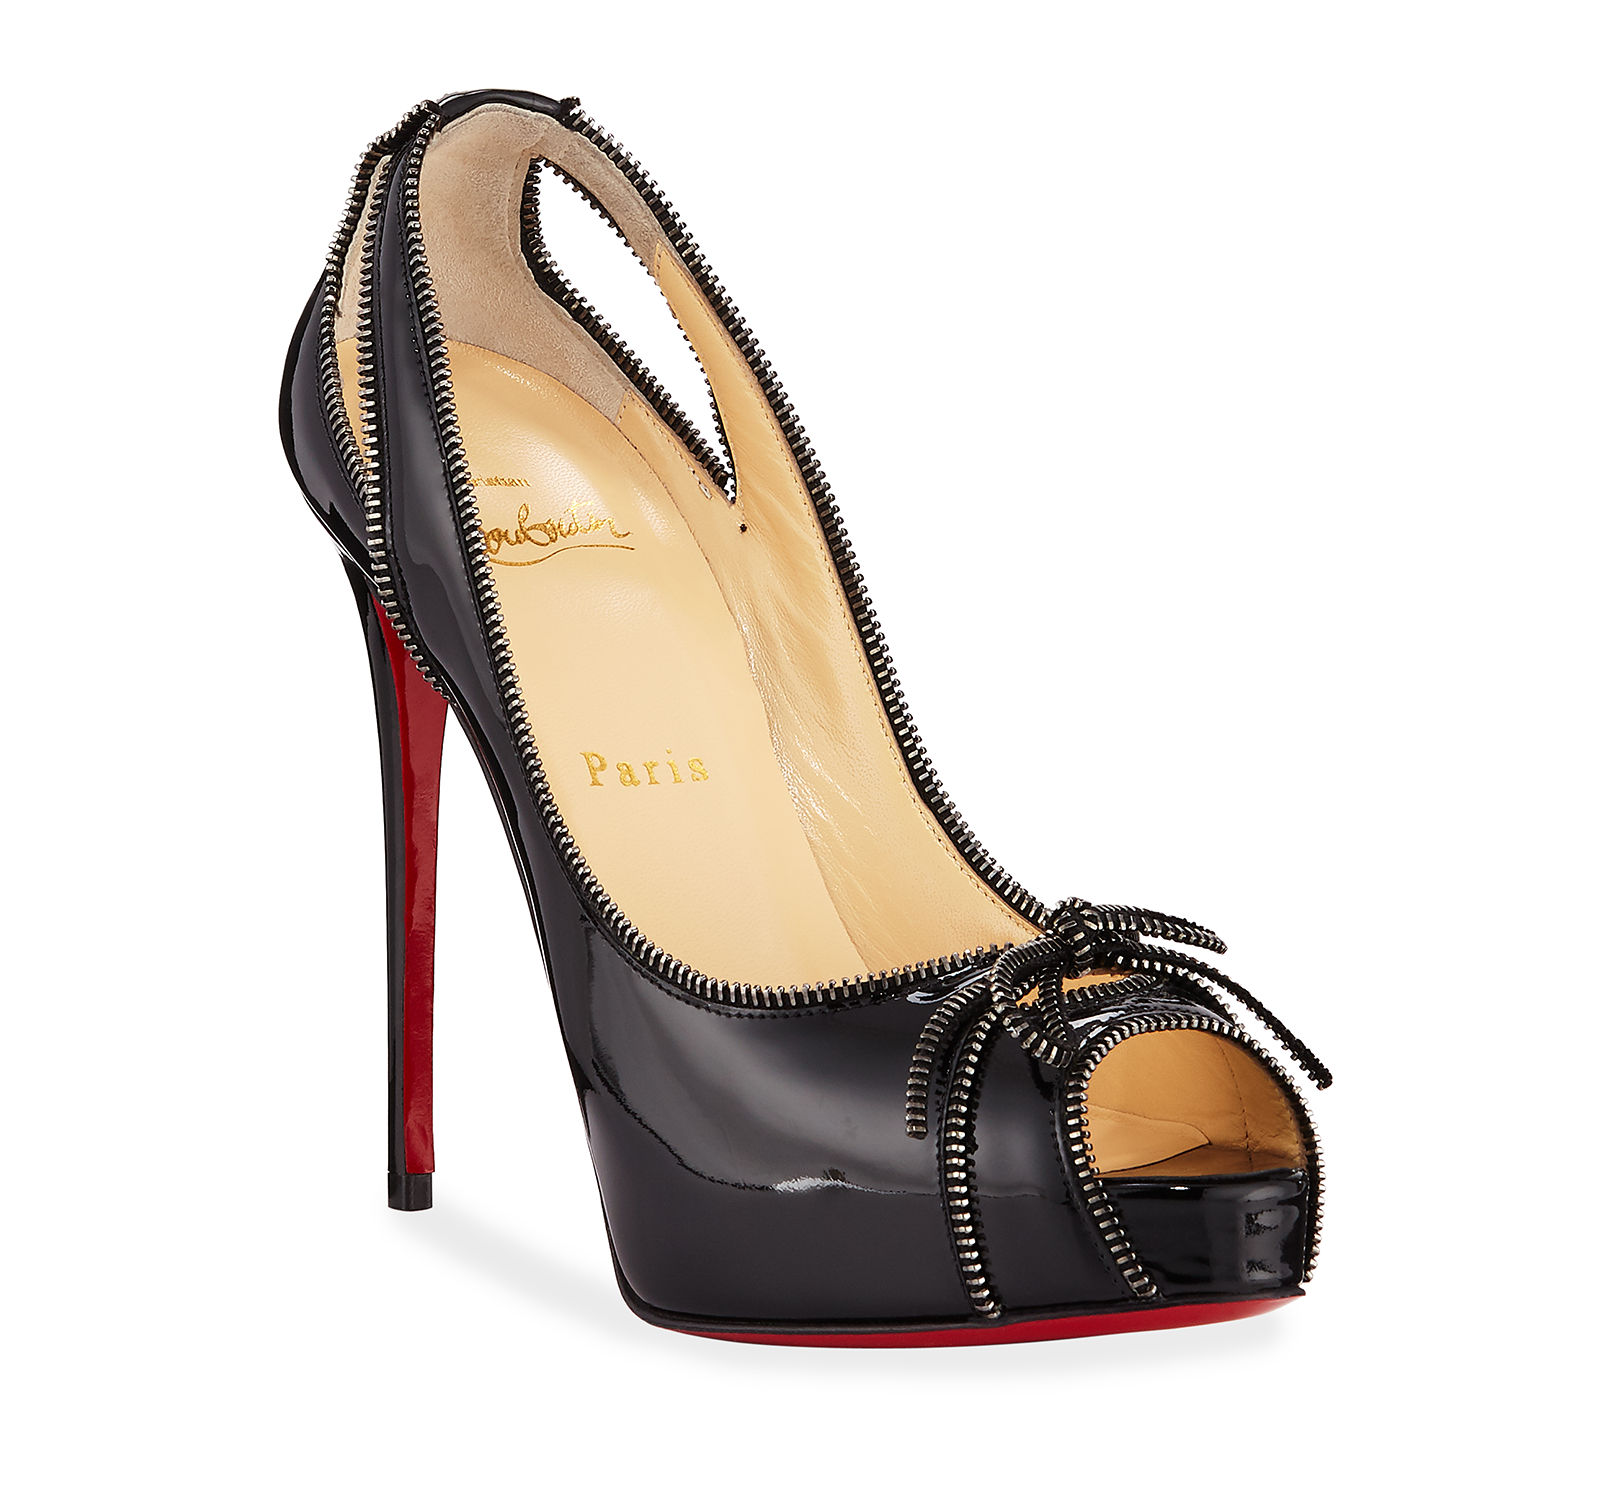 f64ed8050 Man Woman Christian Louboutin Colbina Zipper-Trim Patent Red Sole Pump  Special Sale 7823f6